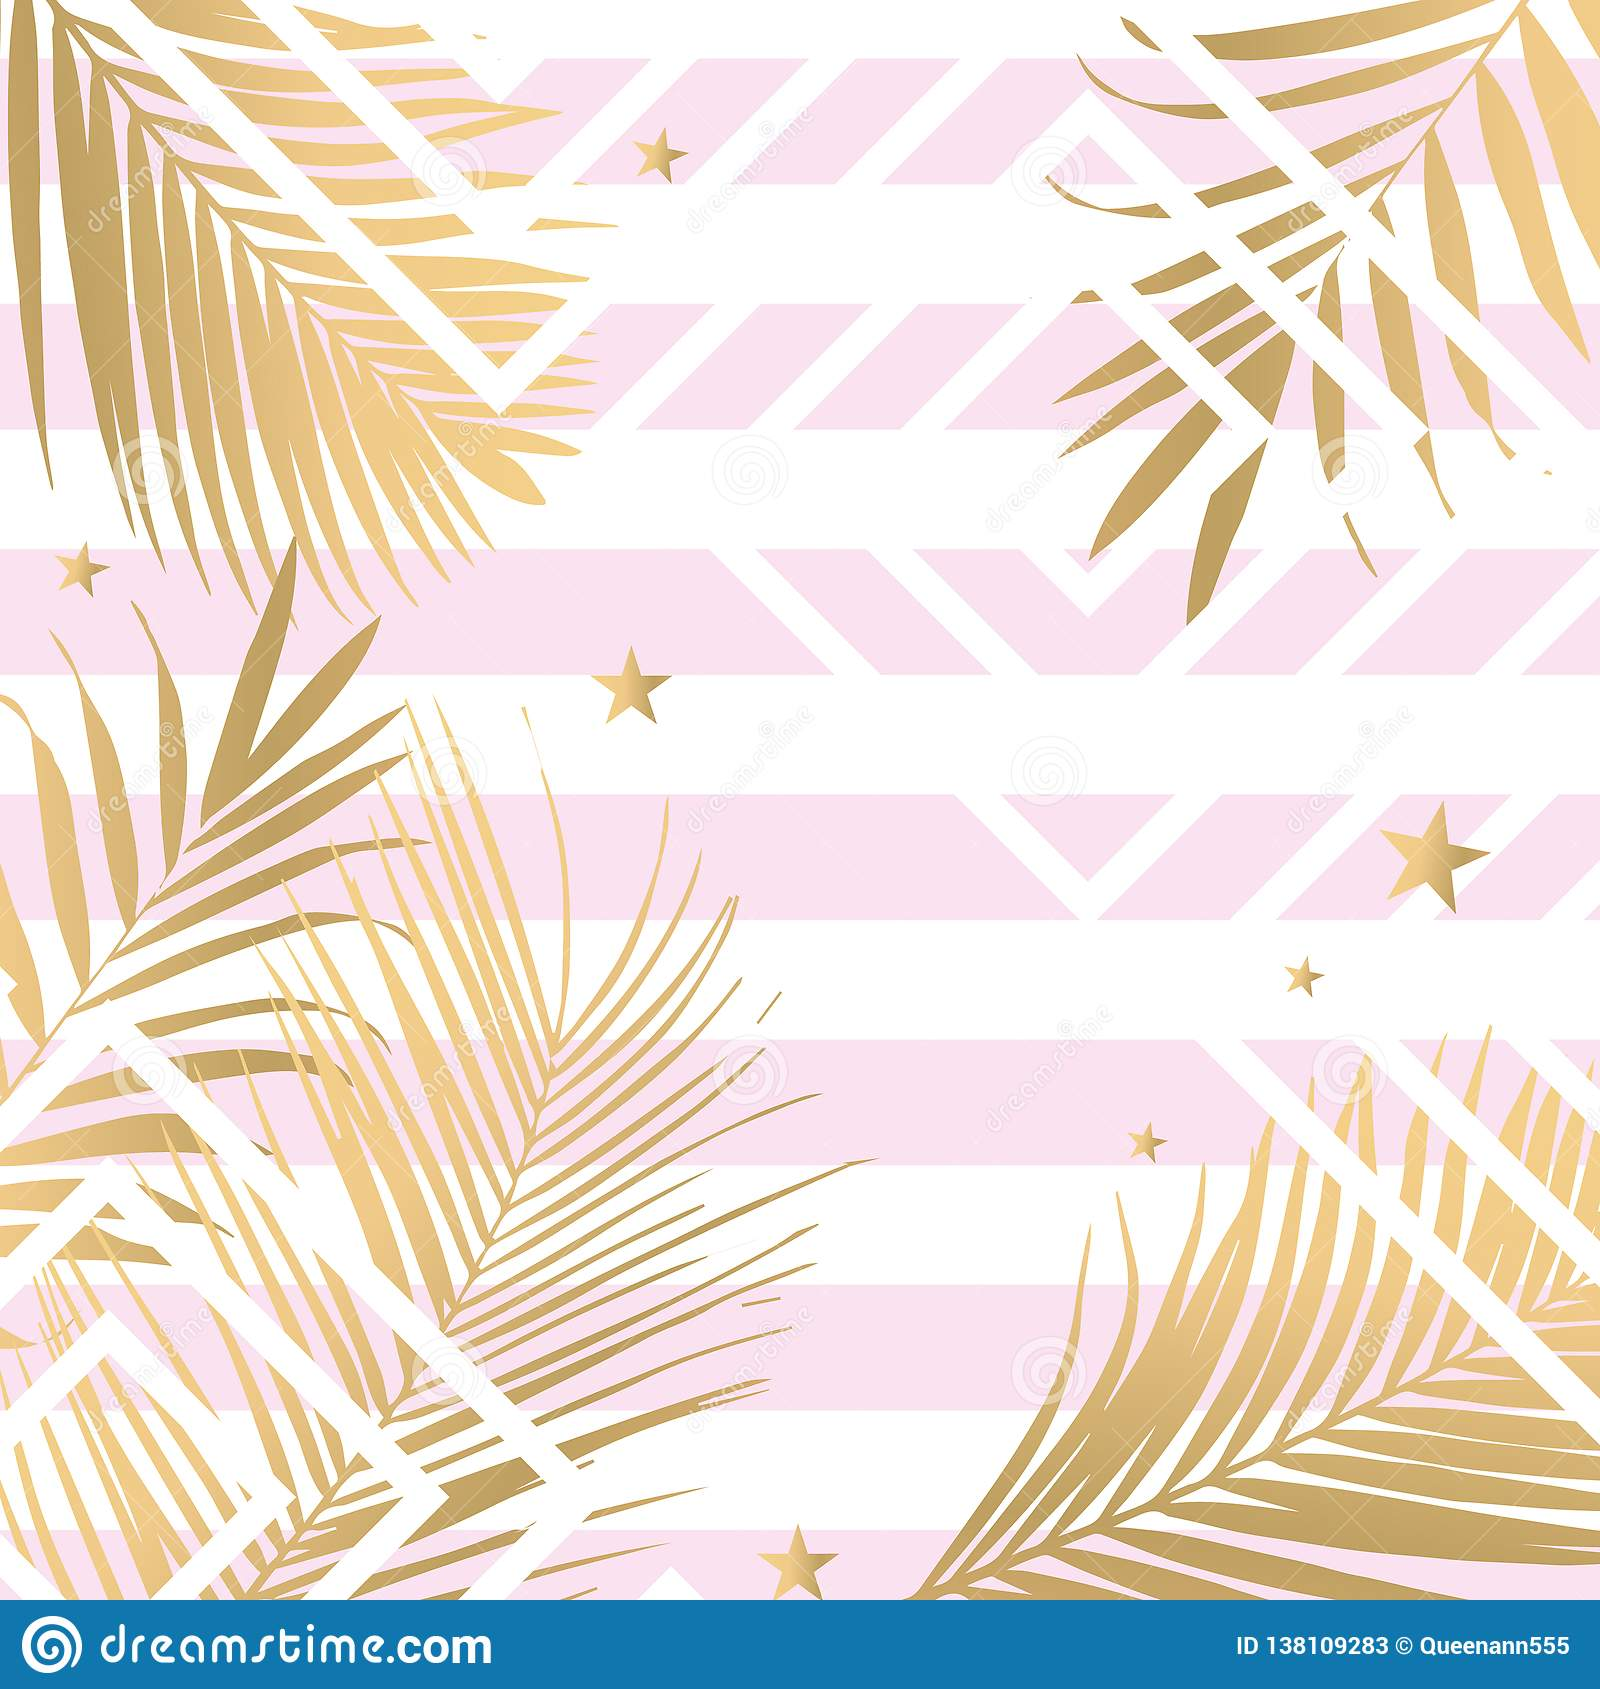 Vector Tropical Gold Palm Leaves On Pink Background Stock Illustration Illustration Of Gold Decoration 138109283 Tropical palm tree leaves background. https www dreamstime com vector tropical palm leaves pink background gold image138109283